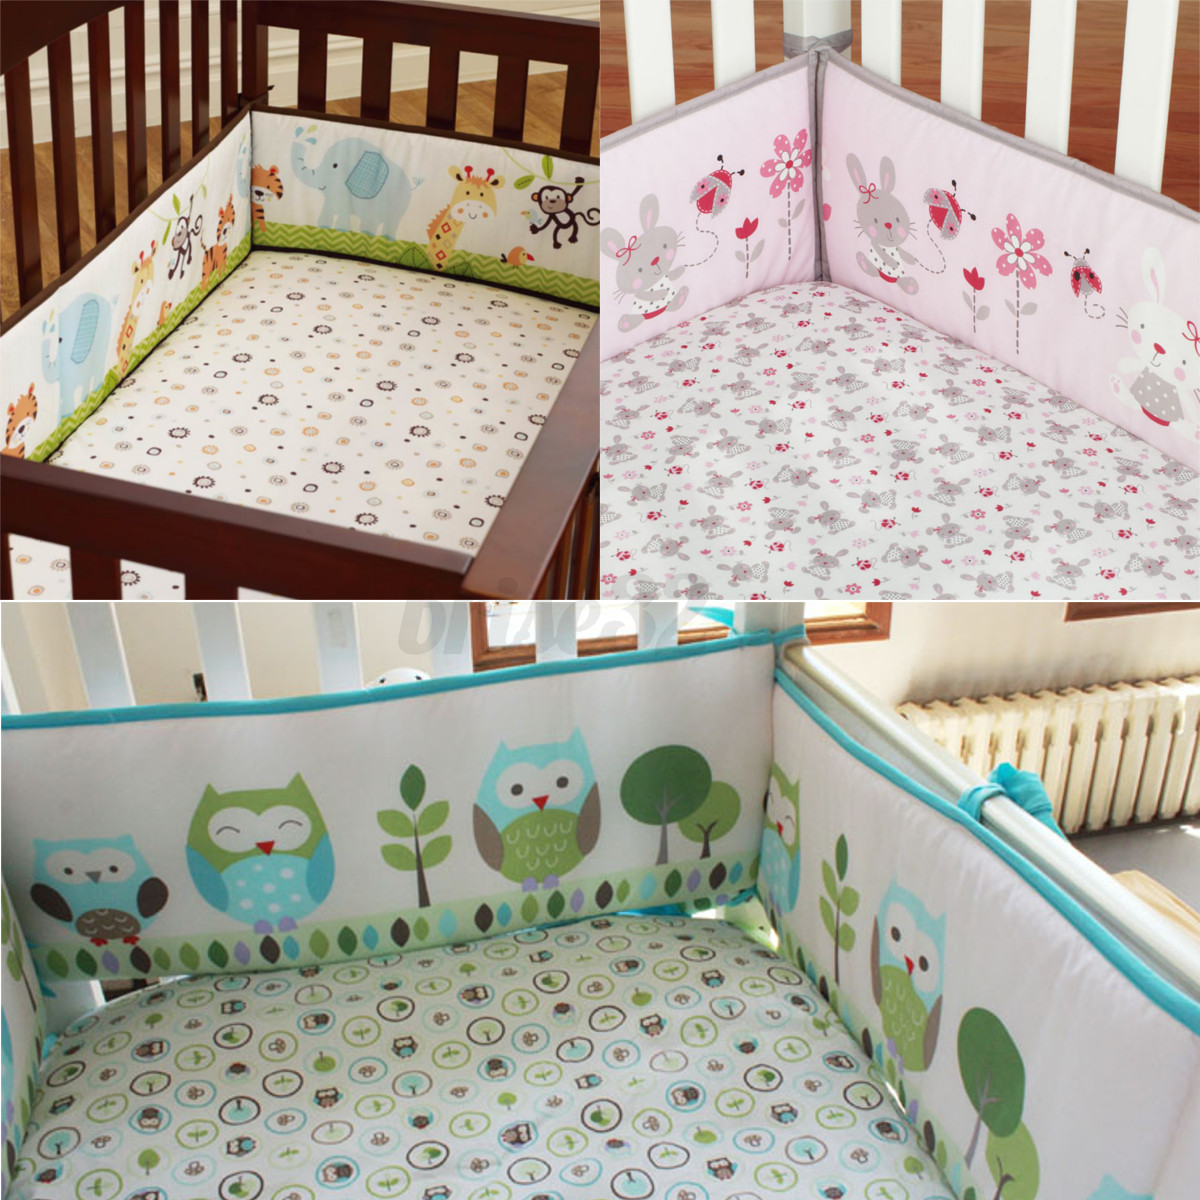 4Pcs/set Animal Baby Infant Cot Crib Bumper Toddler